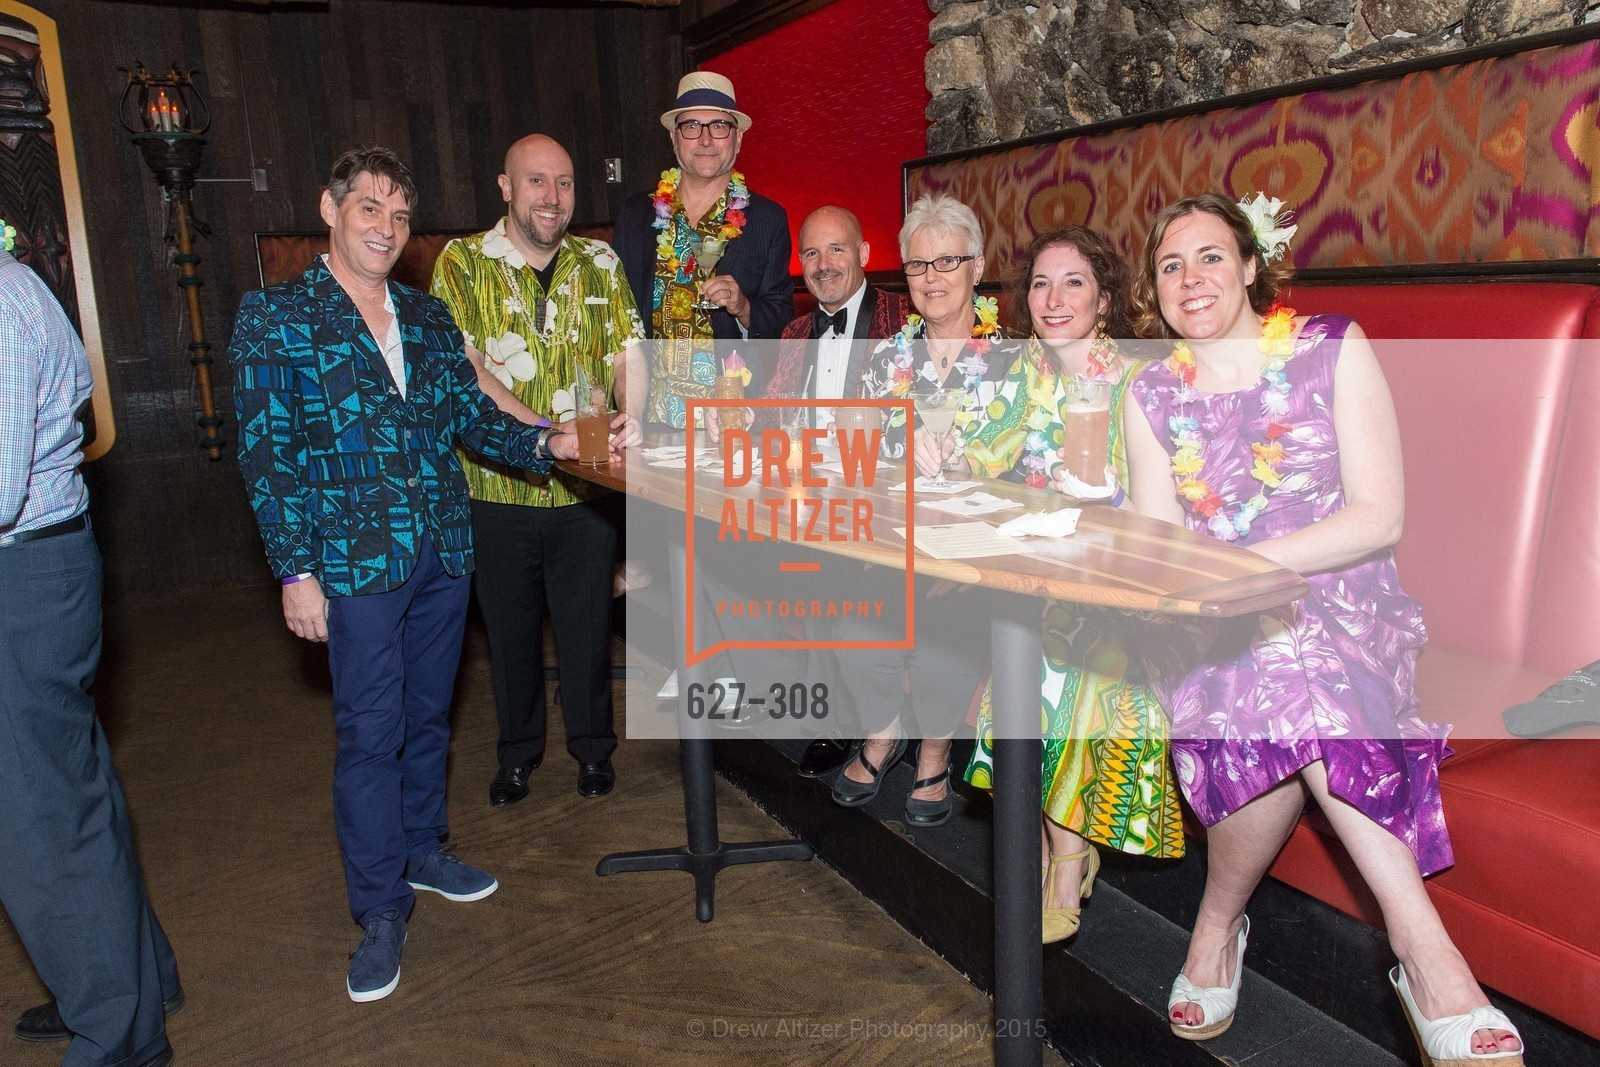 Jules Bain, Otto von Stroheim, John Coyle, Kathy Wartelle, Brenda Gray, Tonga Room & Hurricane Bar Celebrates 70 Years of Tiki Glory, Fairmont, September 23rd, 2015,Drew Altizer, Drew Altizer Photography, full-service agency, private events, San Francisco photographer, photographer california